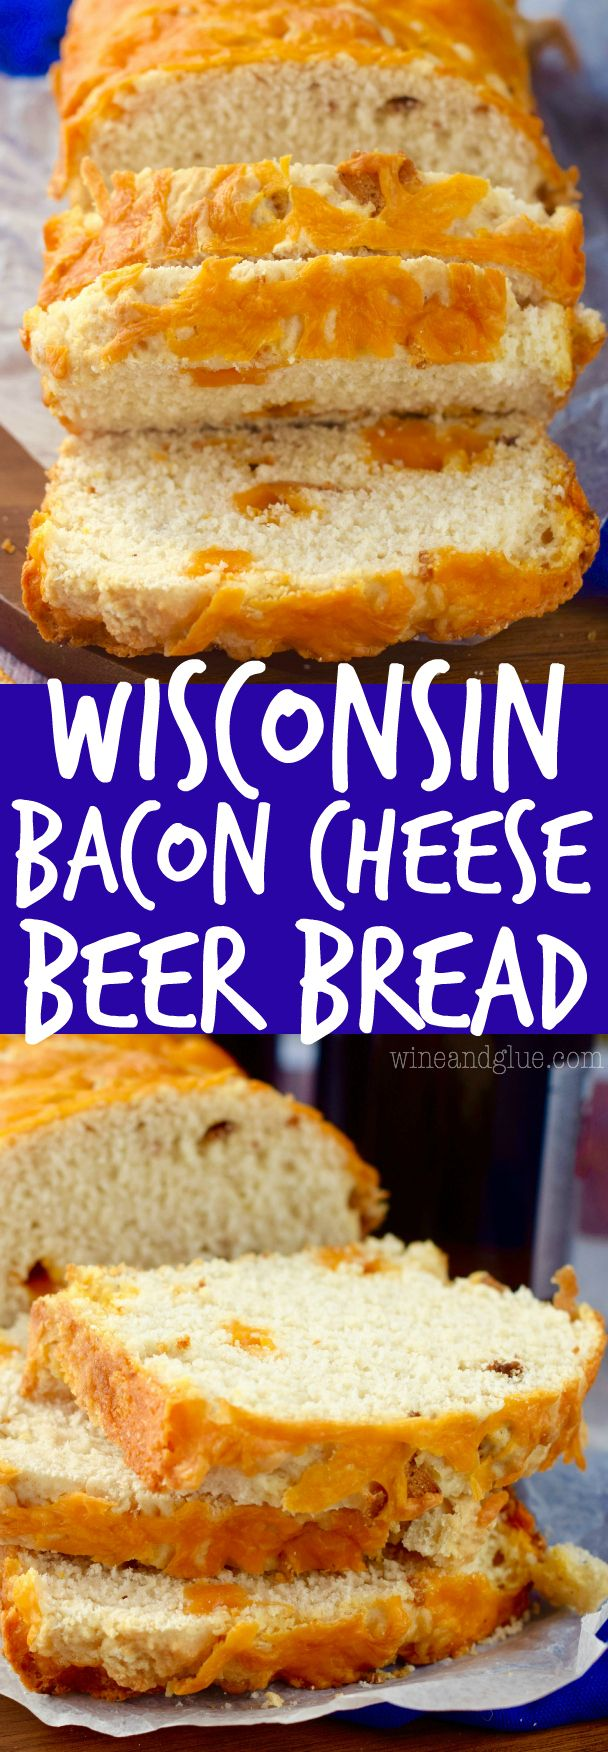 This Bacon Cheese Beer Bread is super simple to make with only FIVE ingredients, and super delicious!: